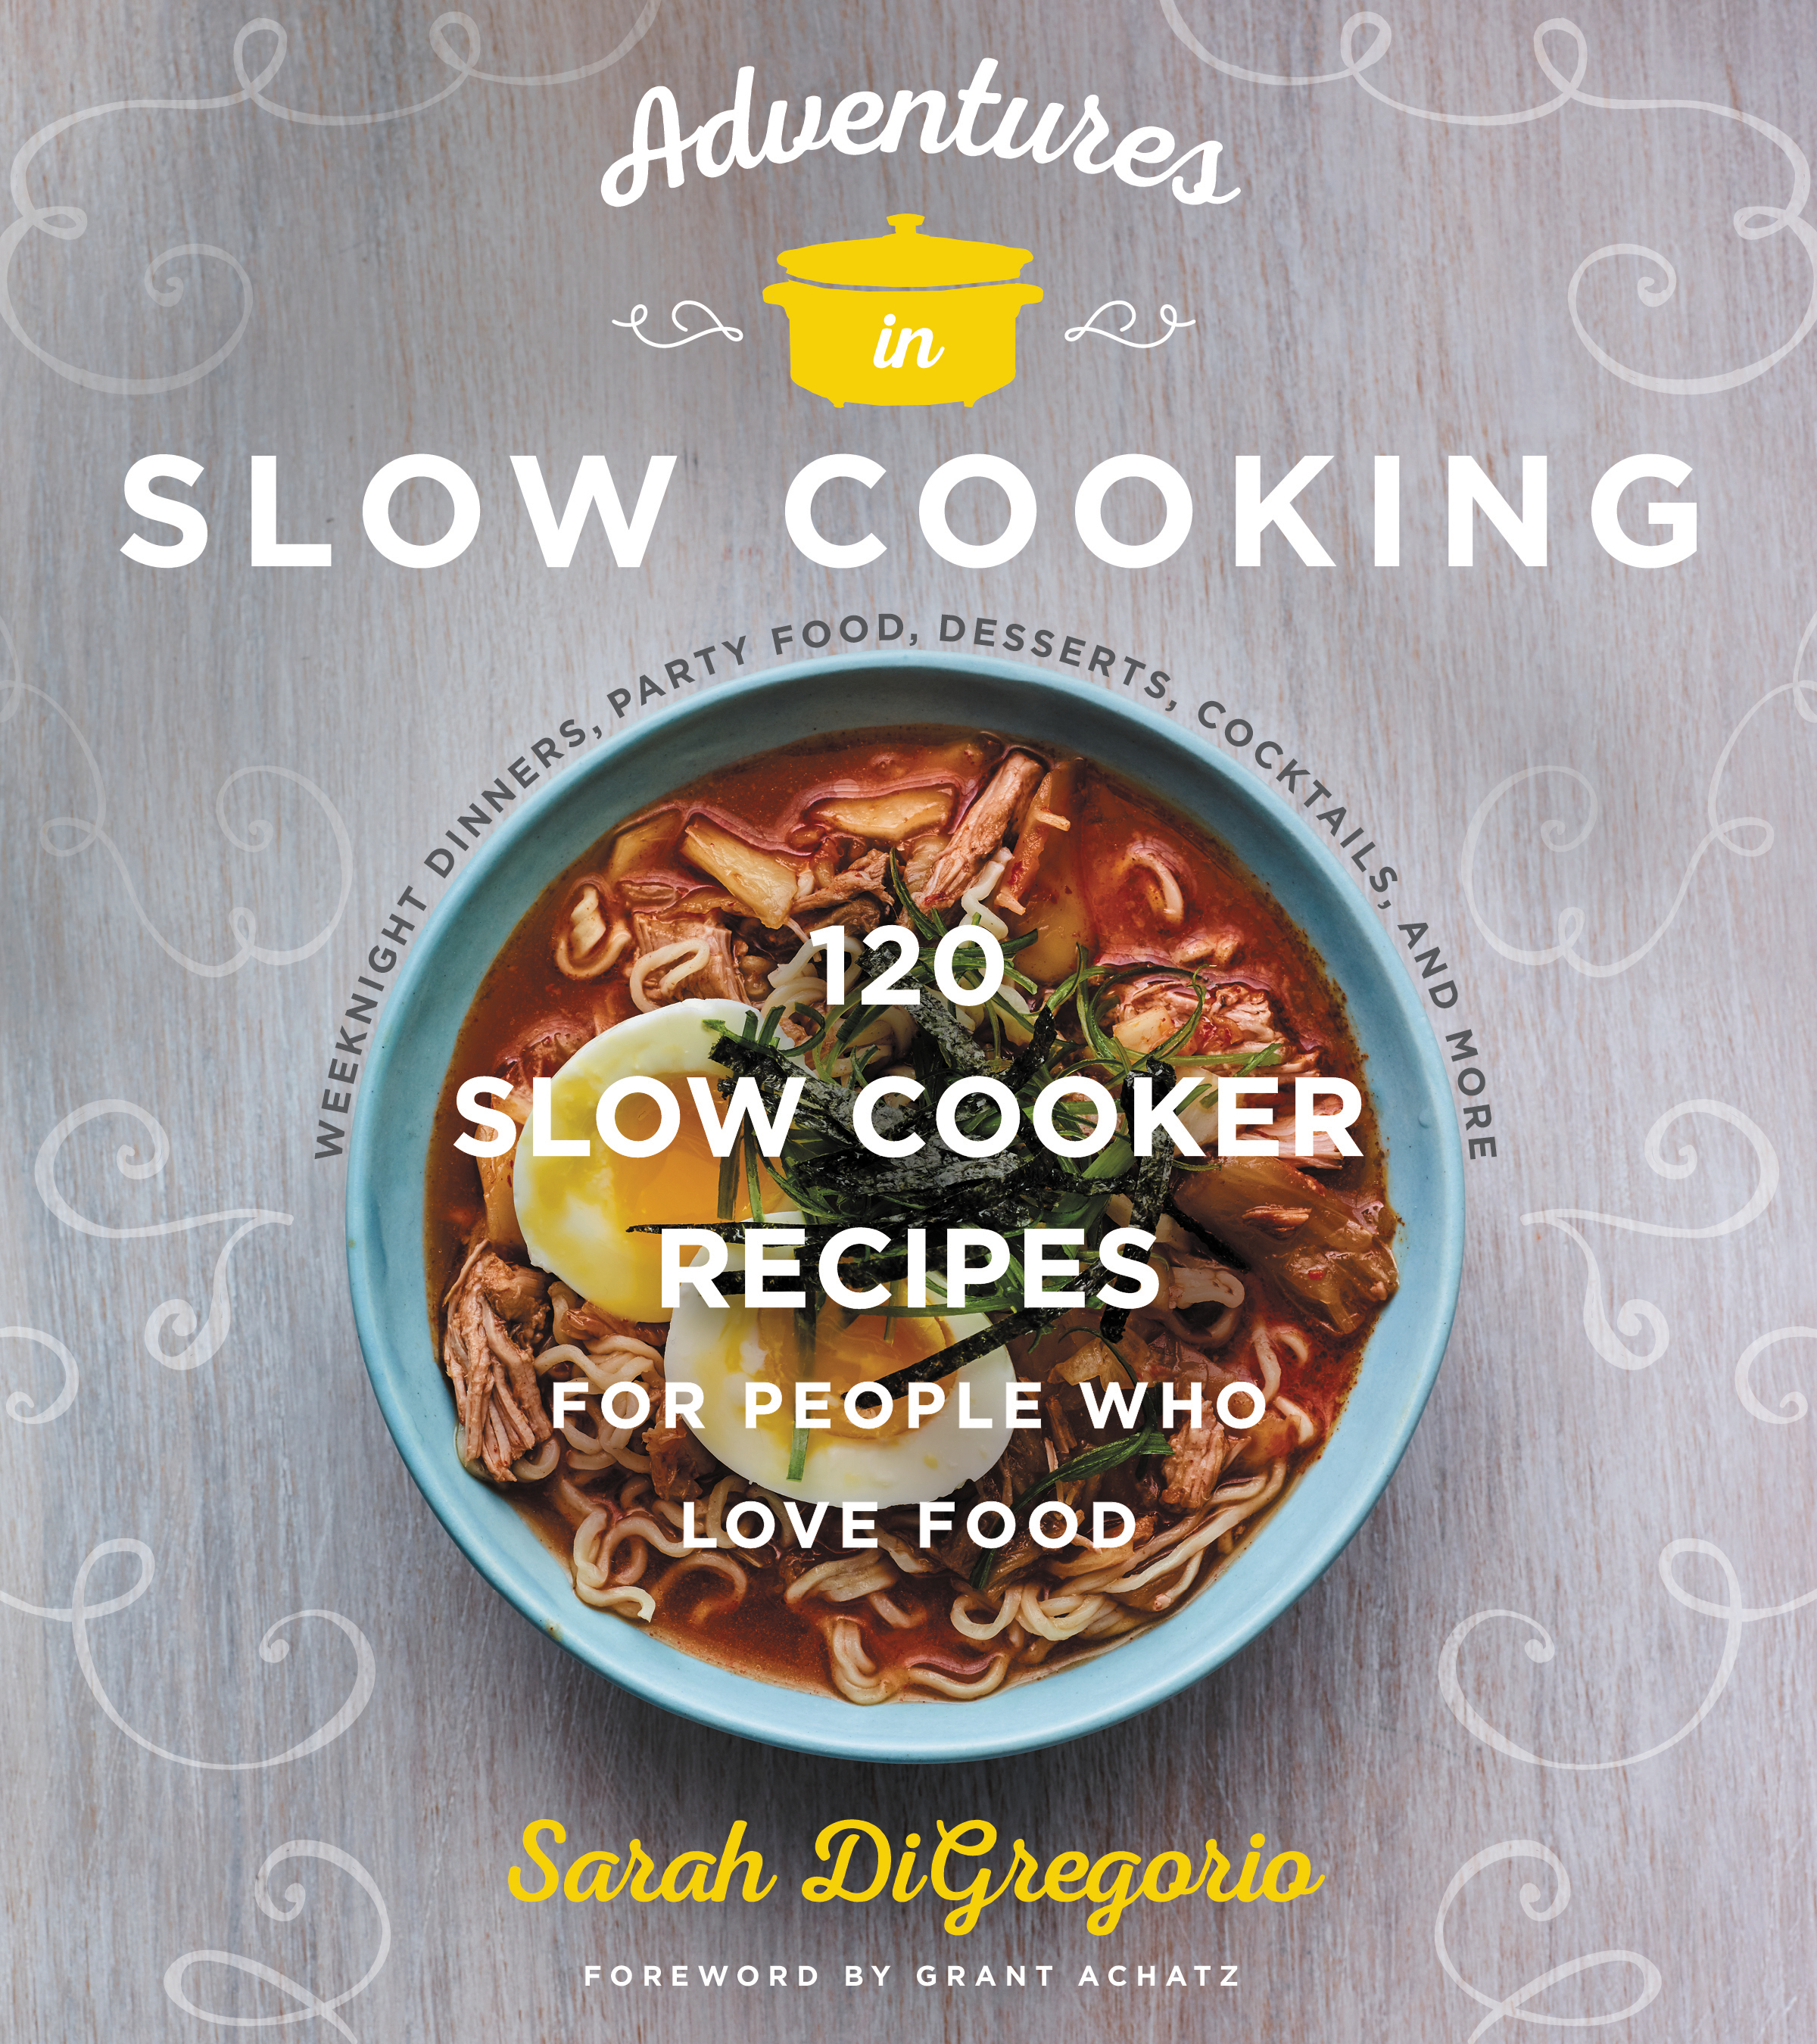 Book Launch: Adventures in Slow Cooking by Sarah DiGregorio